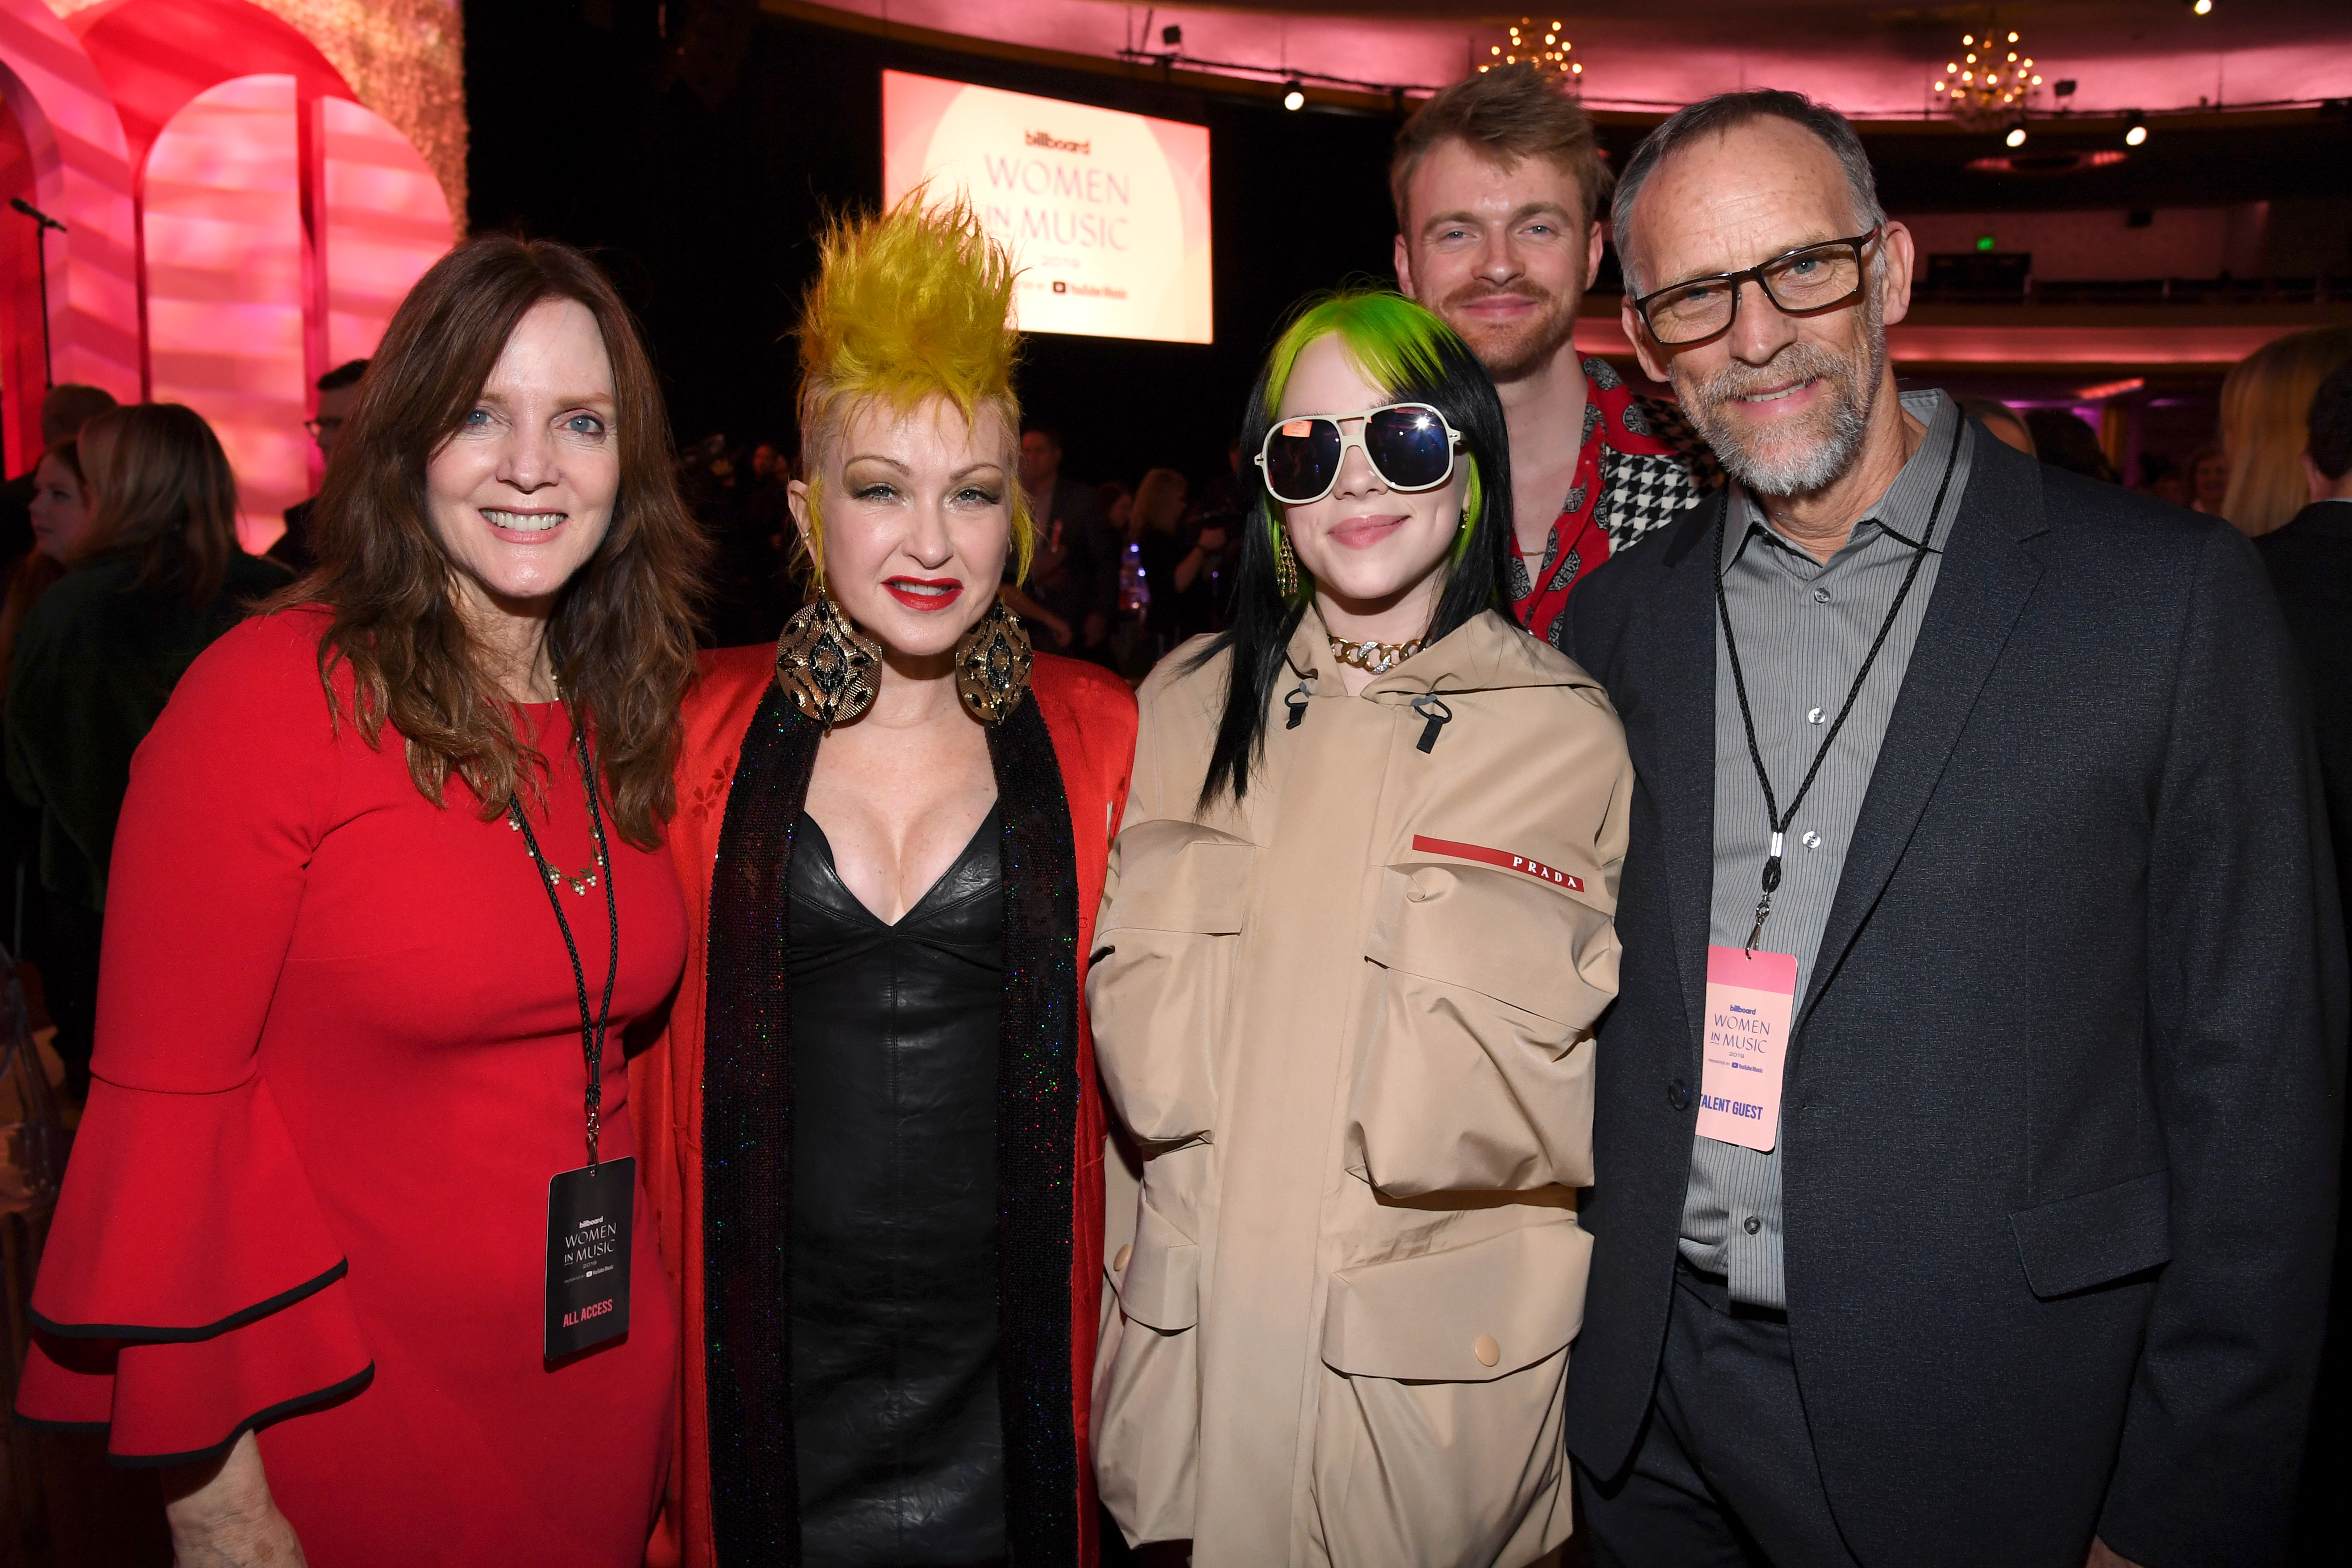 LOS ANGELES, CALIFORNIA - DECEMBER 12: (L-R) Maggie Baird, Cyndi Lauper, Billie Eilish, Finneas O'Connell and Patrick O'Connell attend Billboard Women In Music 2019, presented by YouTube Music, on December 12, 2019 in Los Angeles, California. (Photo by Kevin Mazur/Getty Images for Billboard)